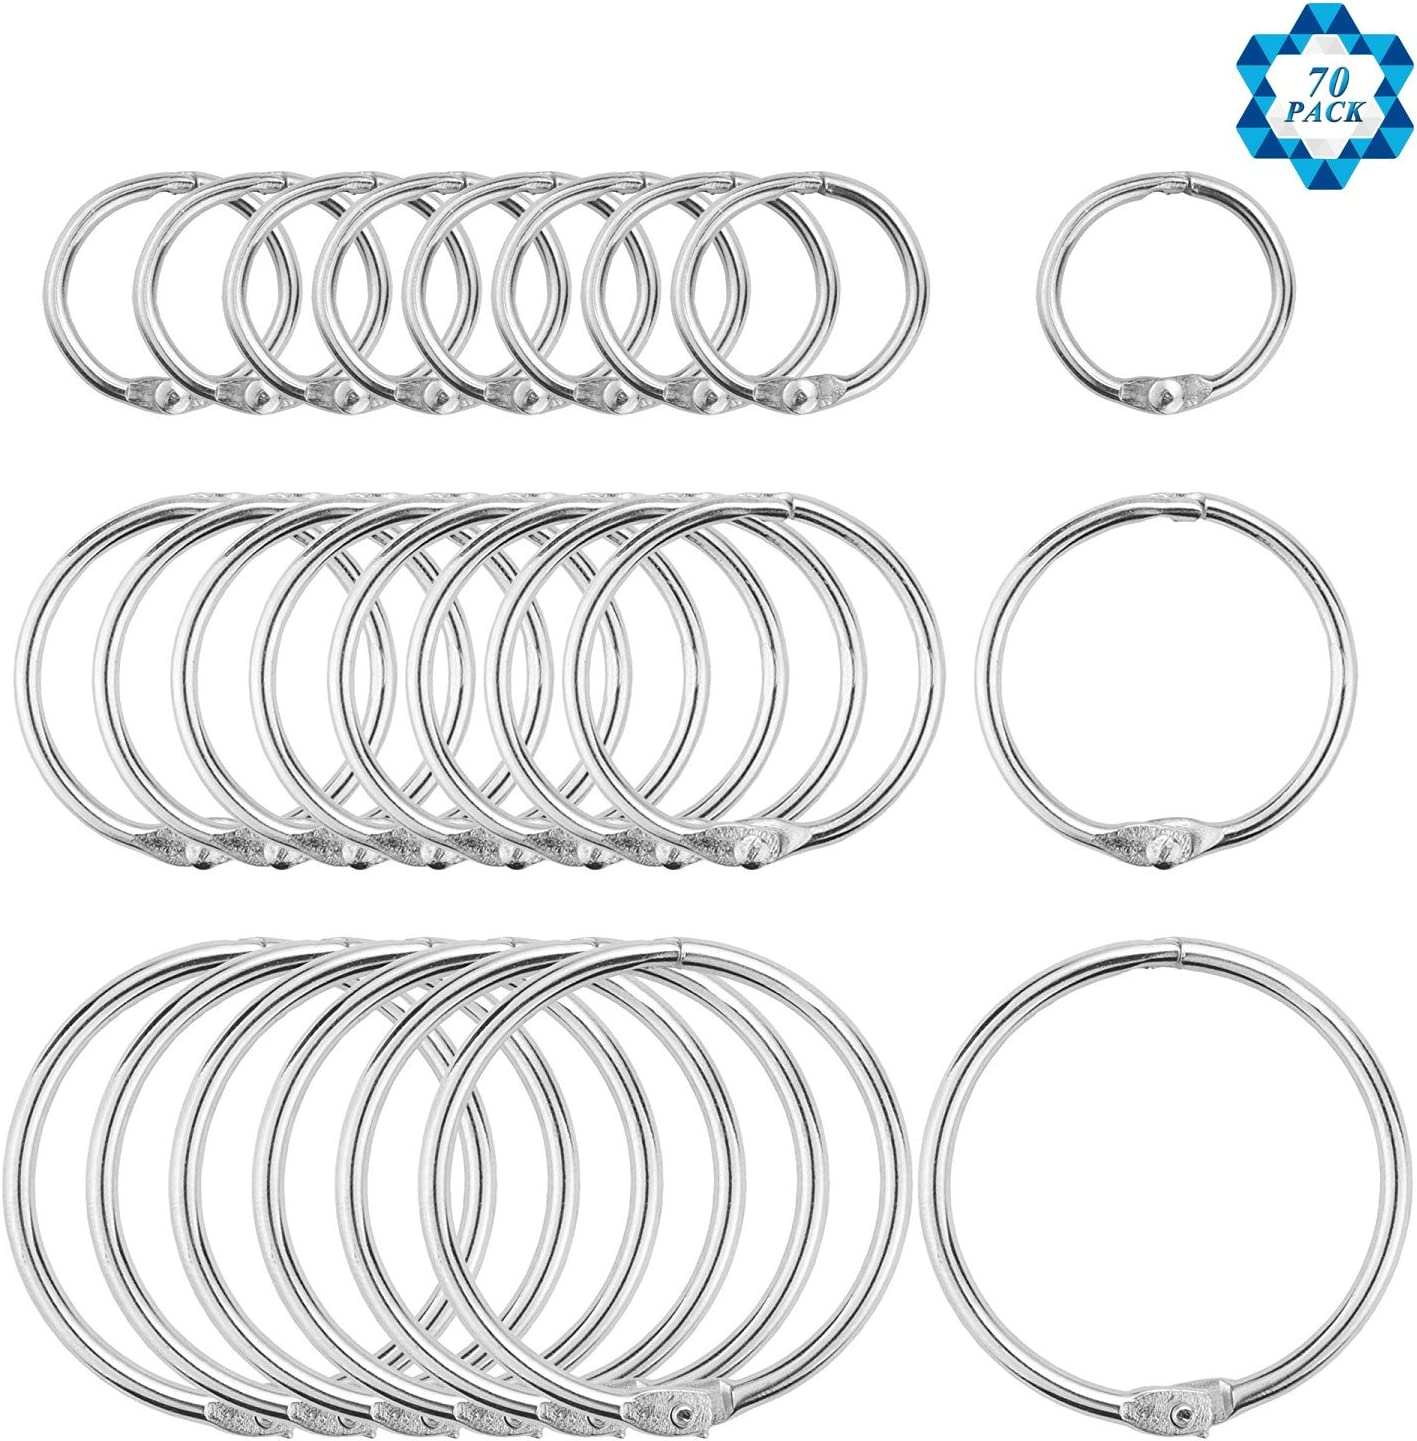 SOTOGO 70 Pieces Book Rings Loose Leaf Binder Ring Key Chain Key Rings,Including 1 Inch 1.2 Inch 1.8 Inch Three Size